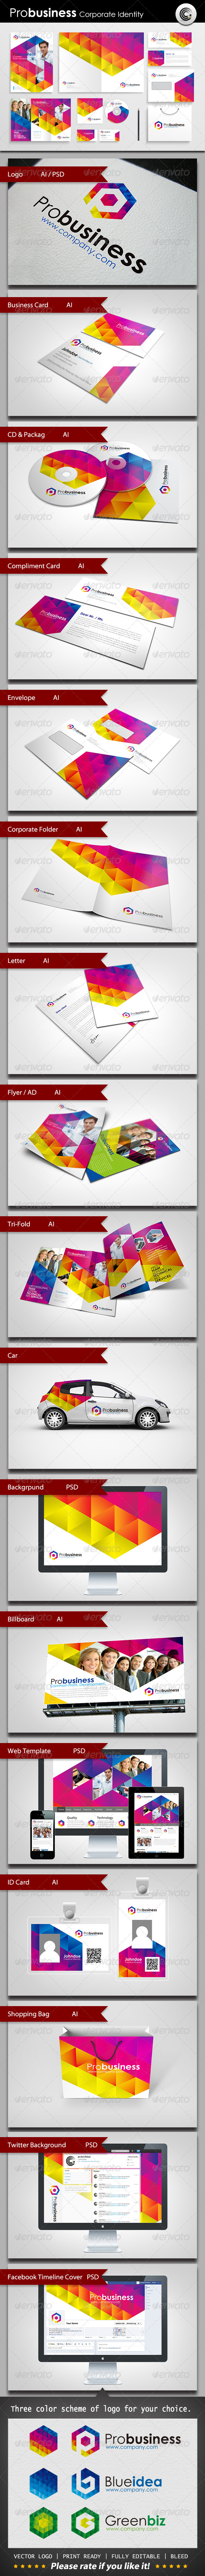 ProBusiness Corporate Identity - Stationery Print Templates